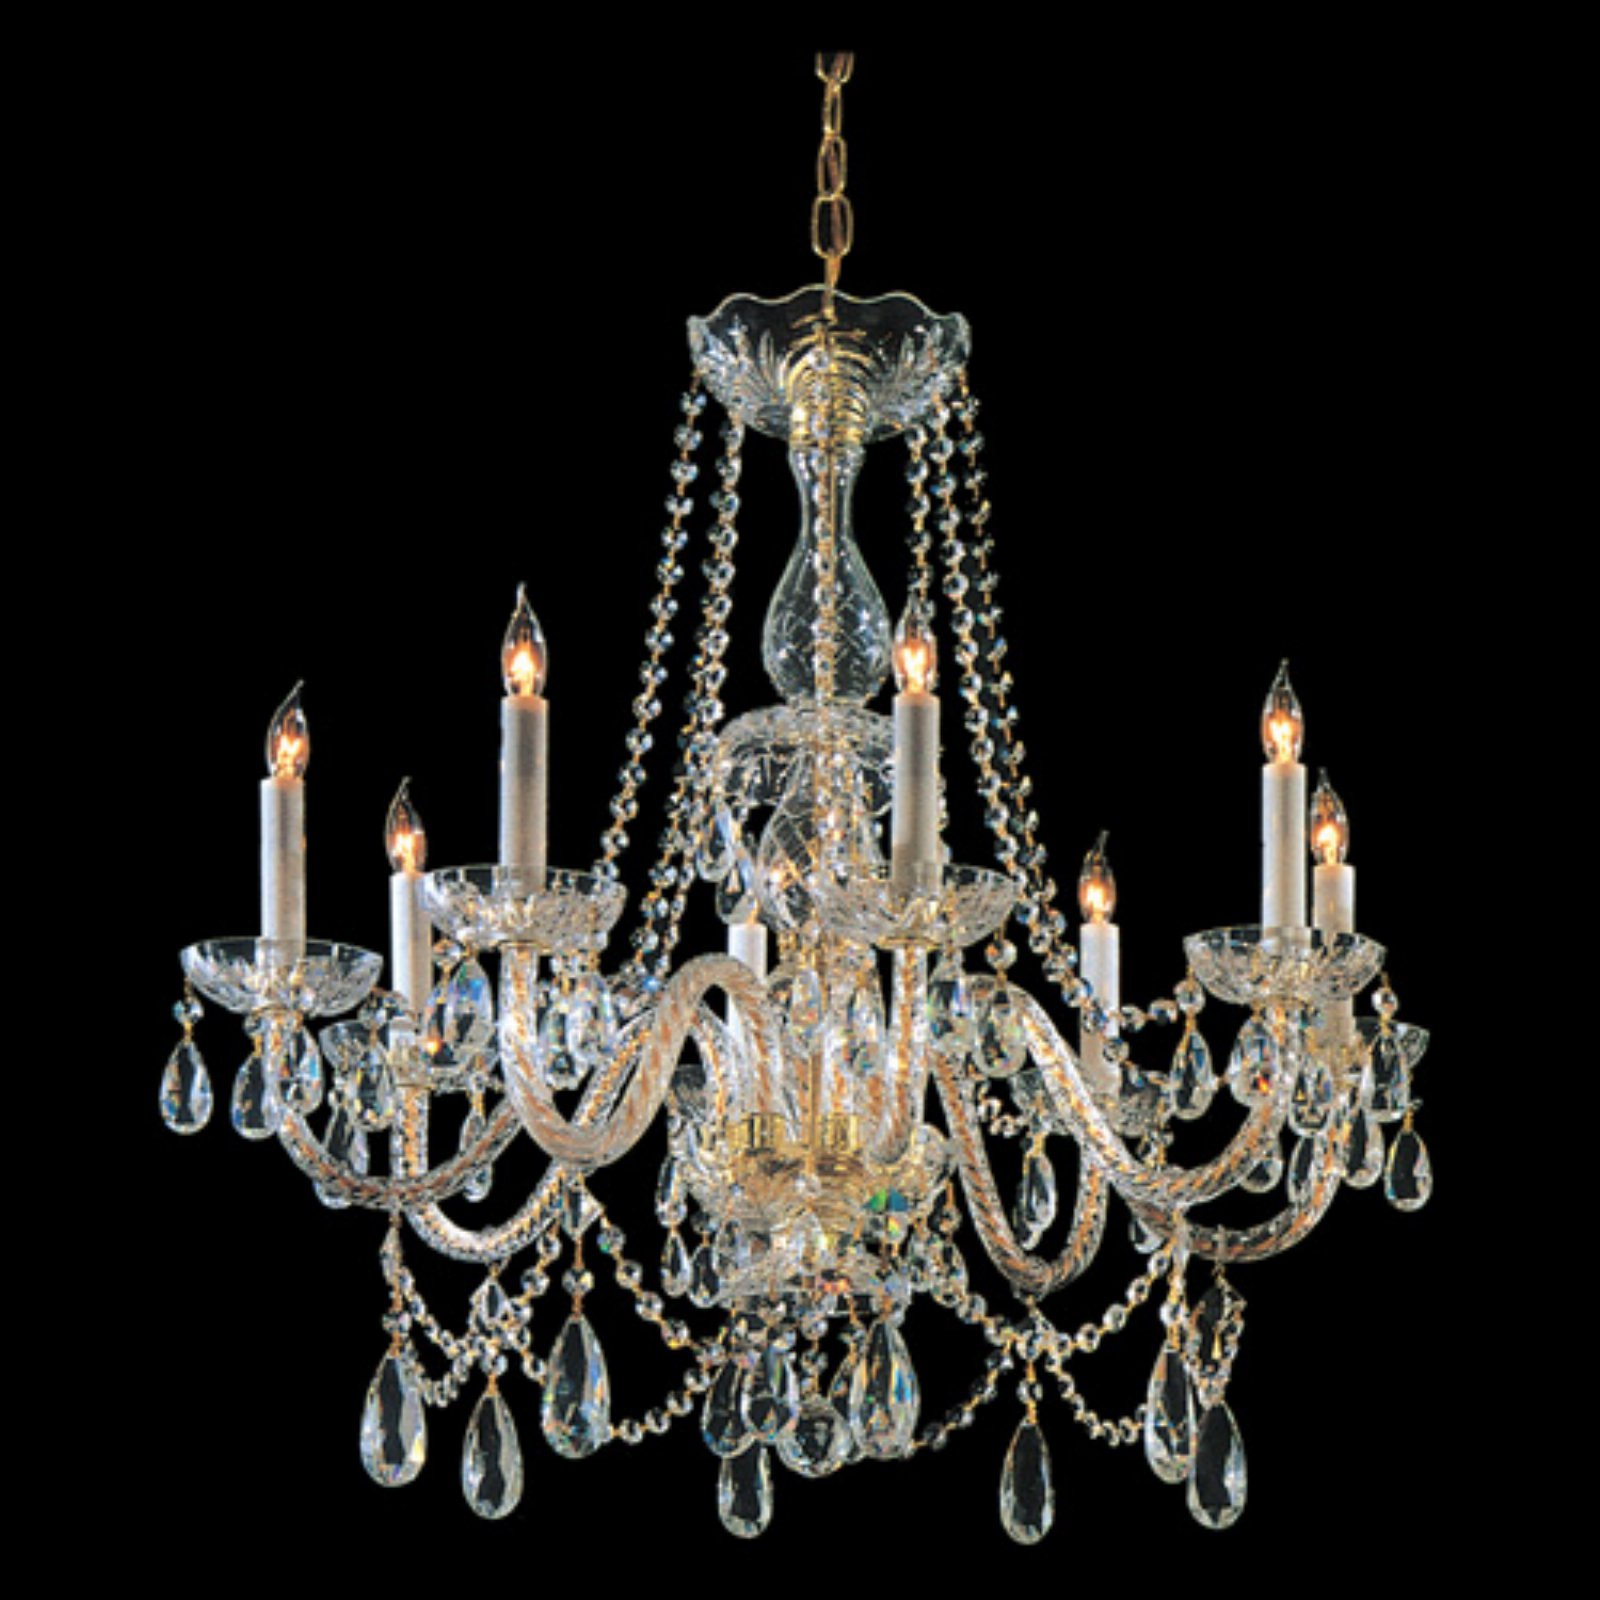 Crystorama 1128-PB-CL-S Traditional Swarovski Elements Crystal Chandelier 26W in. by Crystorama